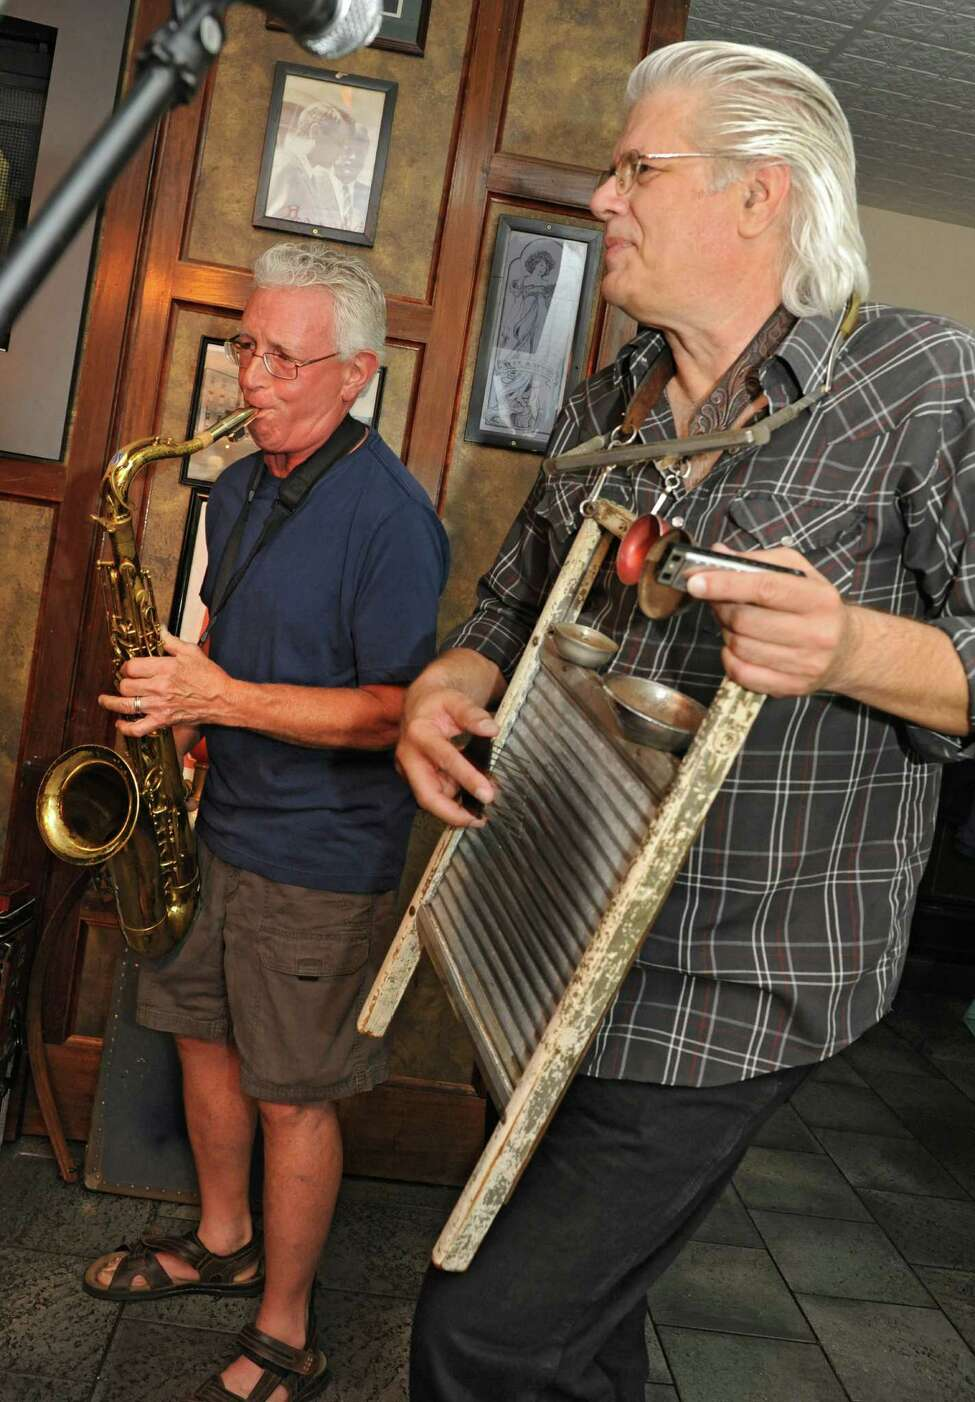 Josh Greenberg plays the saxophone as Greg Haymes plays the washboard with The Ramblin Jug Stompers at McGeary's on Monday, June 20, 2016 in Albany, N.Y. (Lori Van Buren / Times Union)